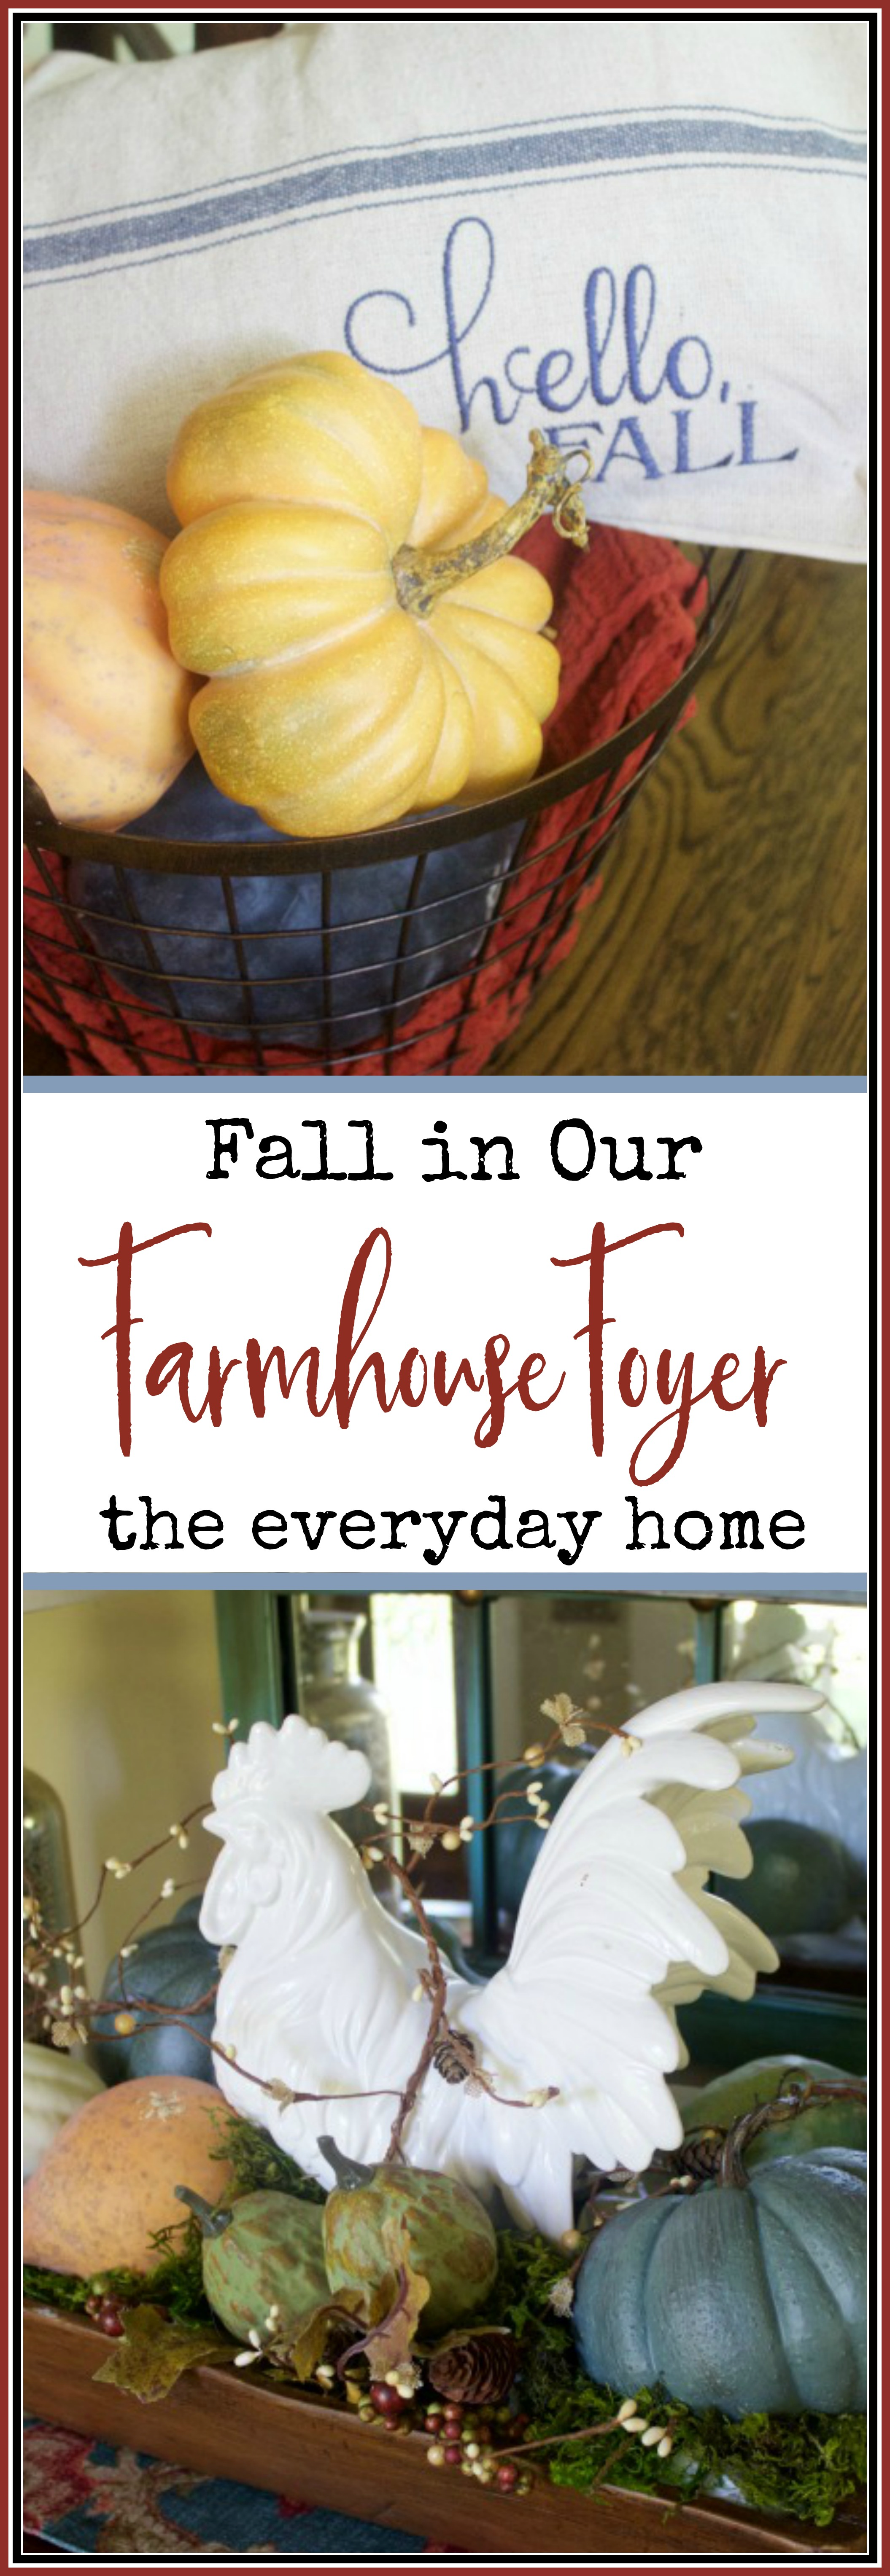 A Farmhouse Foyer for Fall | The Everyday Home